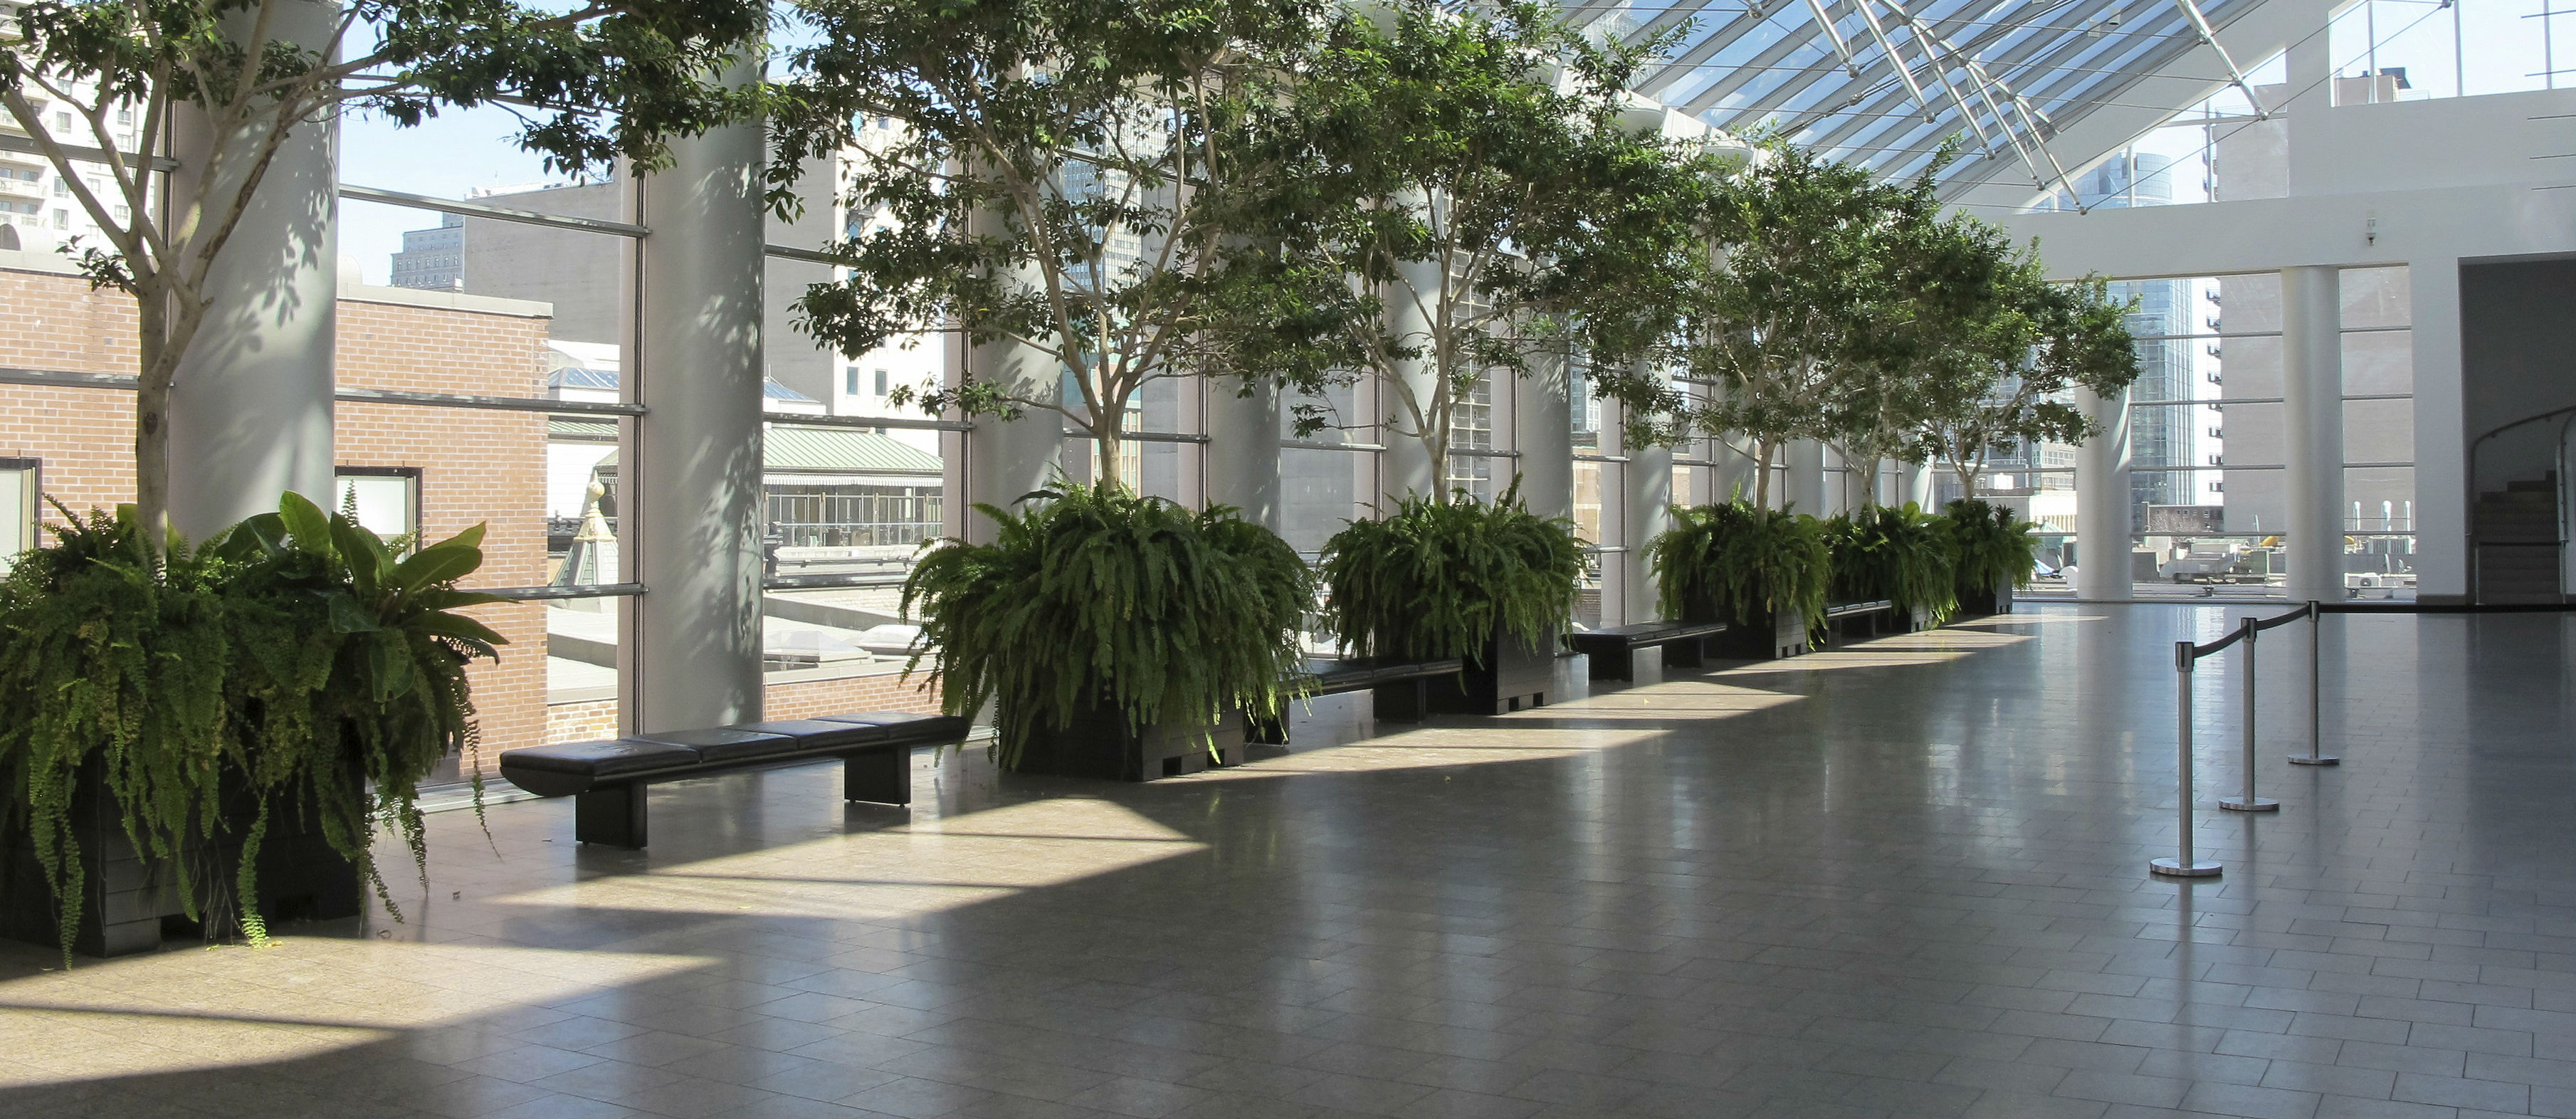 interior plant design | sacramento, ca | the tropical plant house